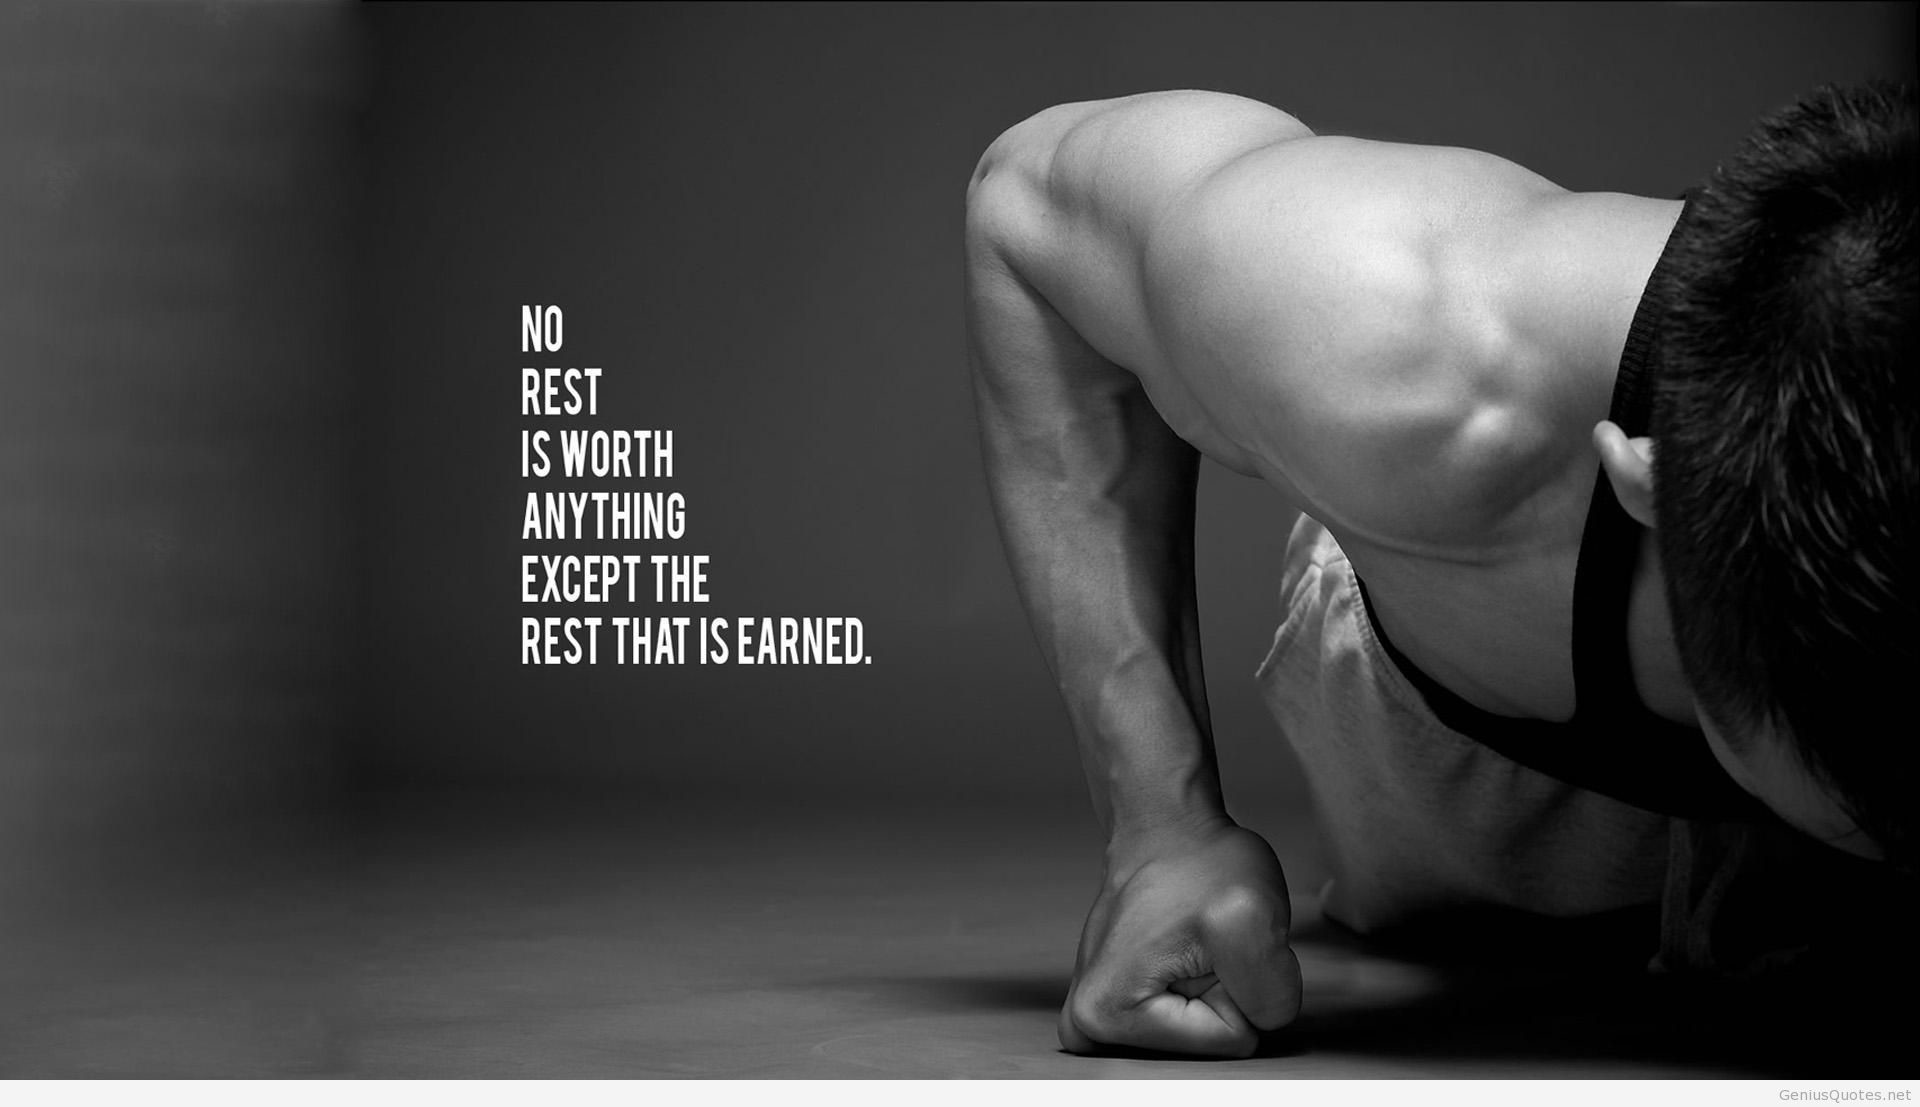 Arnold Schwarzenegger Life Rule Quote | Free Download HD Wallpapers |  HdWallpapersVilla.com | Best Quality HD Wallpapers | Pinterest | Rules  quotes and …